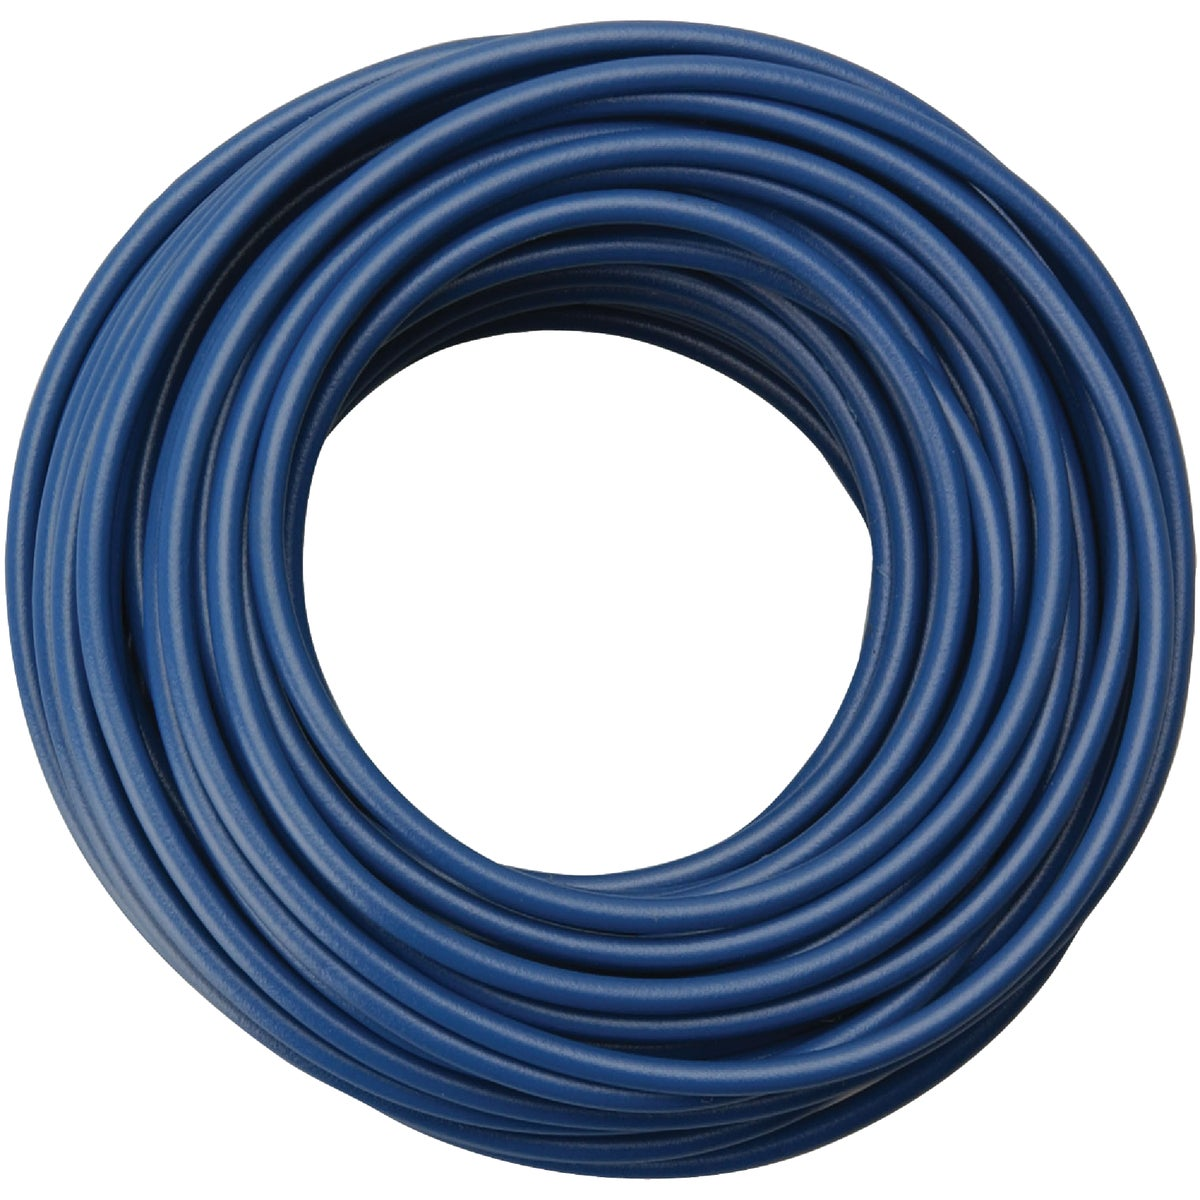 11' 12GA BLUE AUTO WIRE - 12-1-12 by Woods Wire Coleman